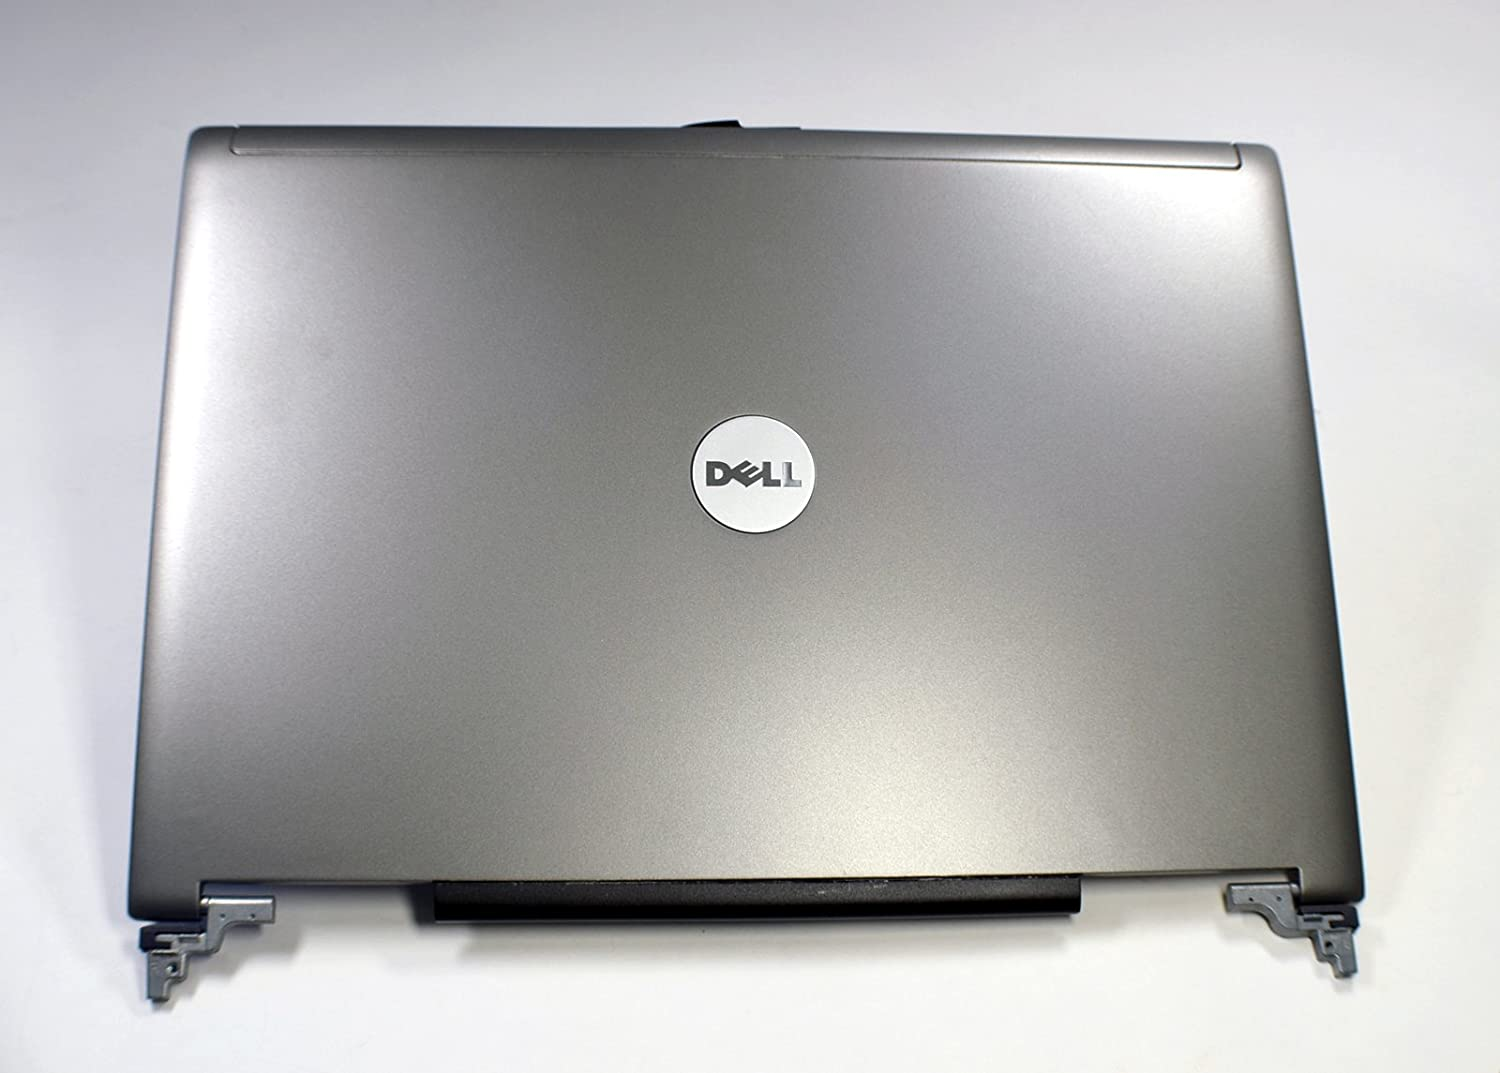 "New JD104 Genuine OEM Dell Latitude D620 D630 D631 14.1"" LCD Back Cover Assembly w/Hinges RE37712 Left Right w/Latch Antenna AMZJX000900 EAZJX000100 Top Lid Latitude Silver Gray Black Trim NG142"